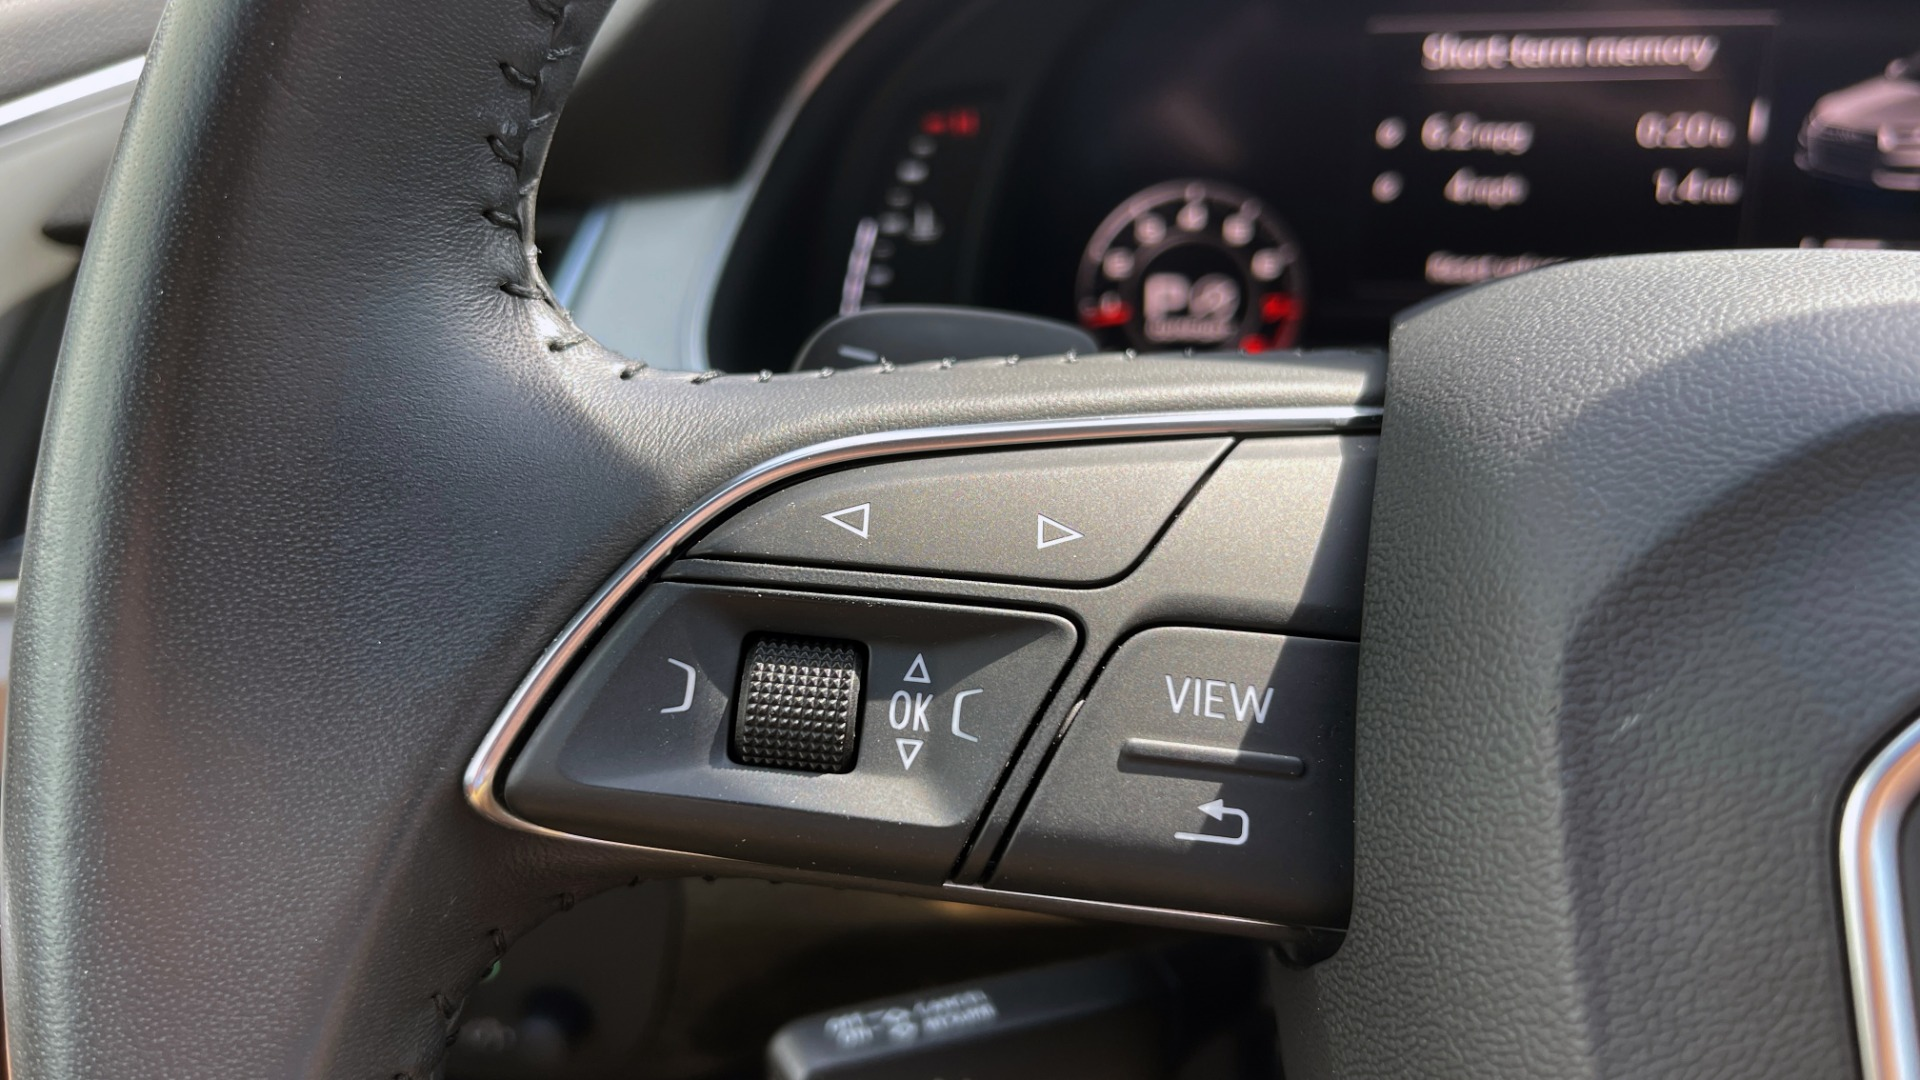 Used 2018 Audi Q7 PREMIUM PLUS / NAV / PANO-ROOF / BOSE / 3-ROW / REARVIEW for sale $43,461 at Formula Imports in Charlotte NC 28227 52